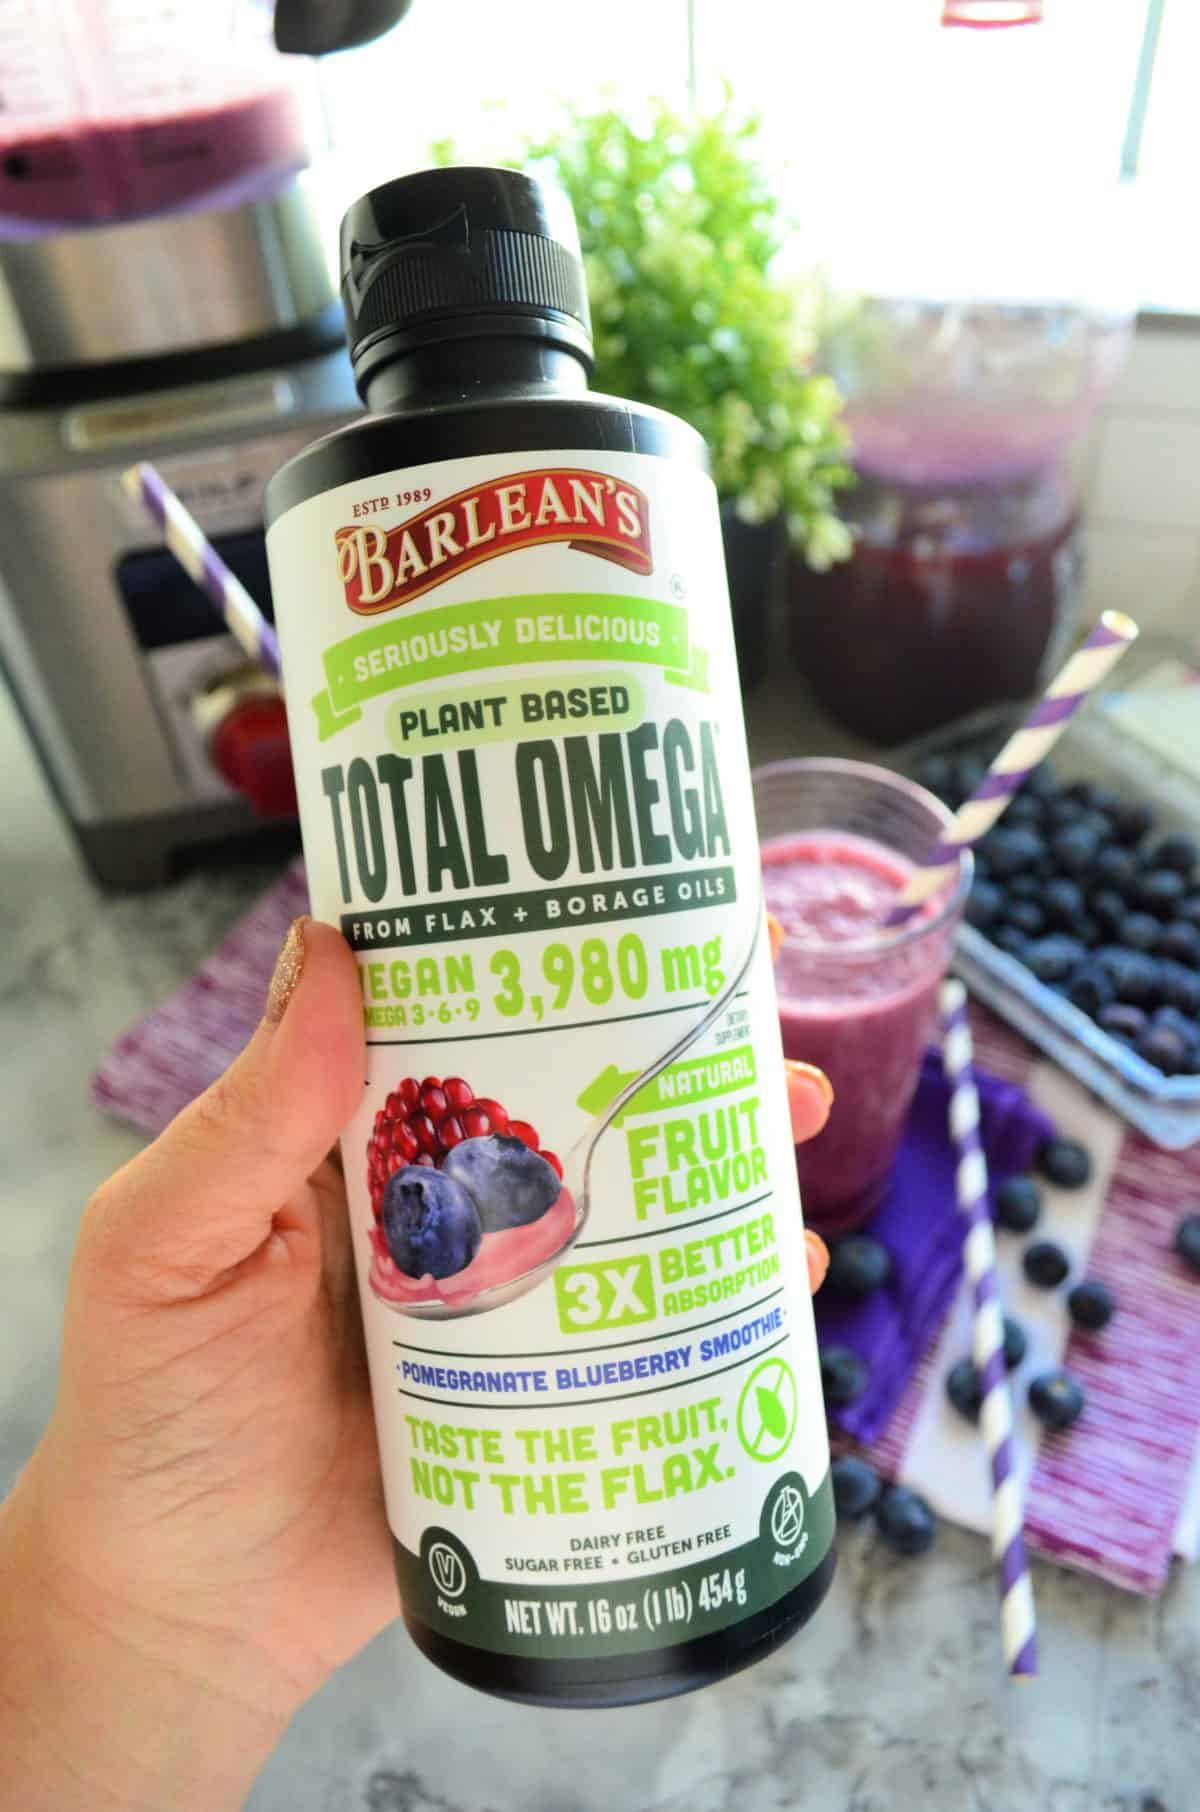 Barlean's Plant Based Total Omega from flax bottle being held close up with smoothies in background.